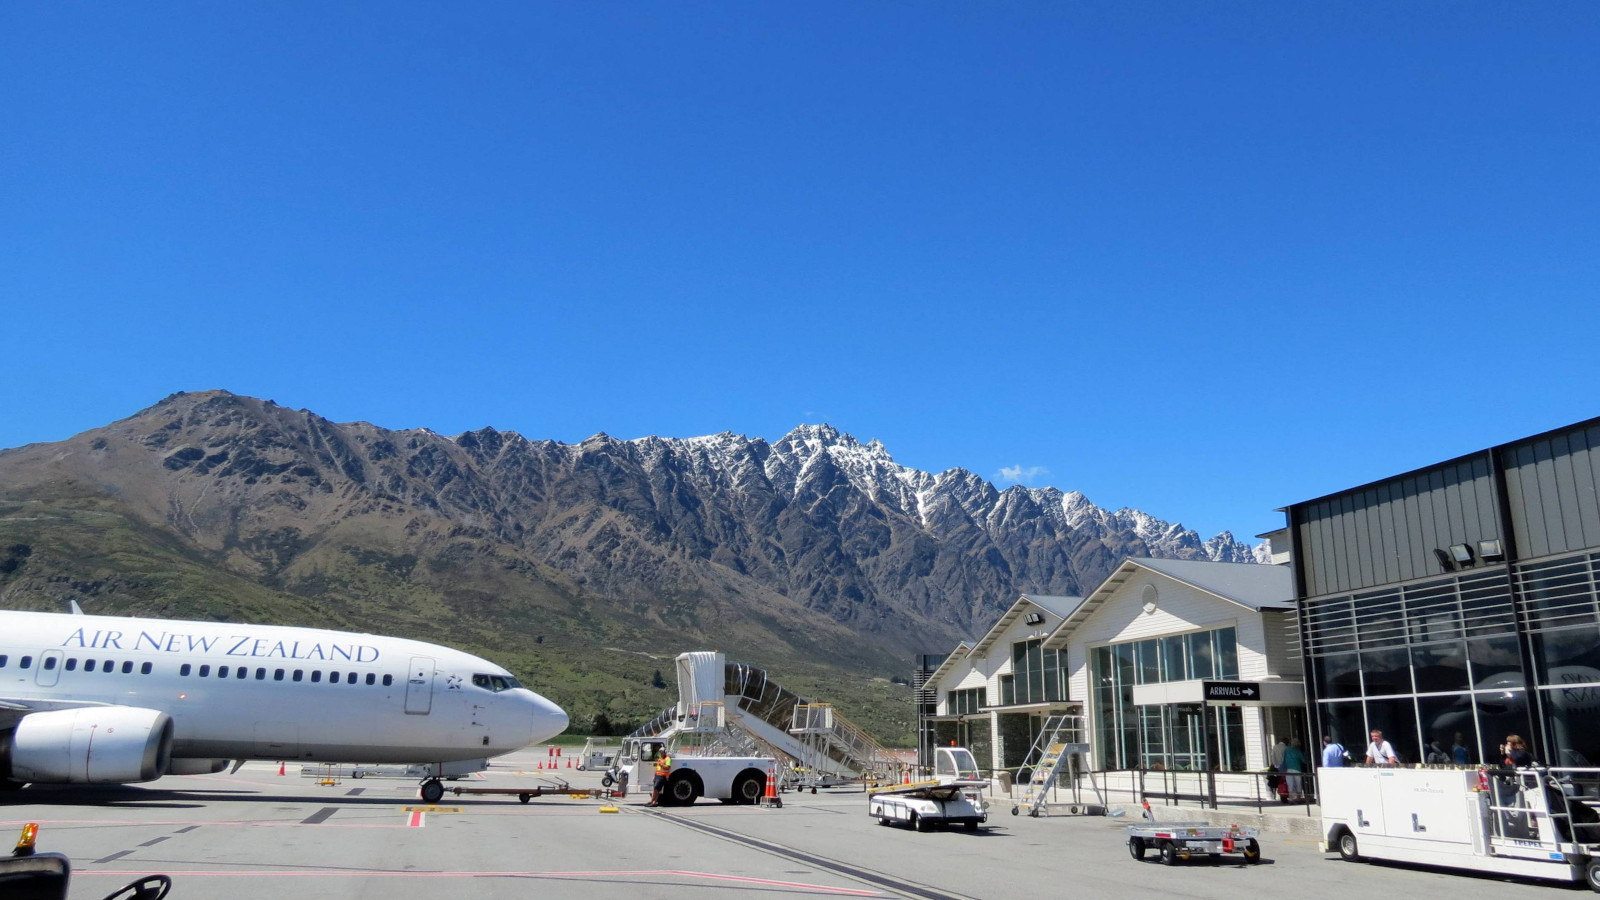 Queenstown Airport, New Zealand